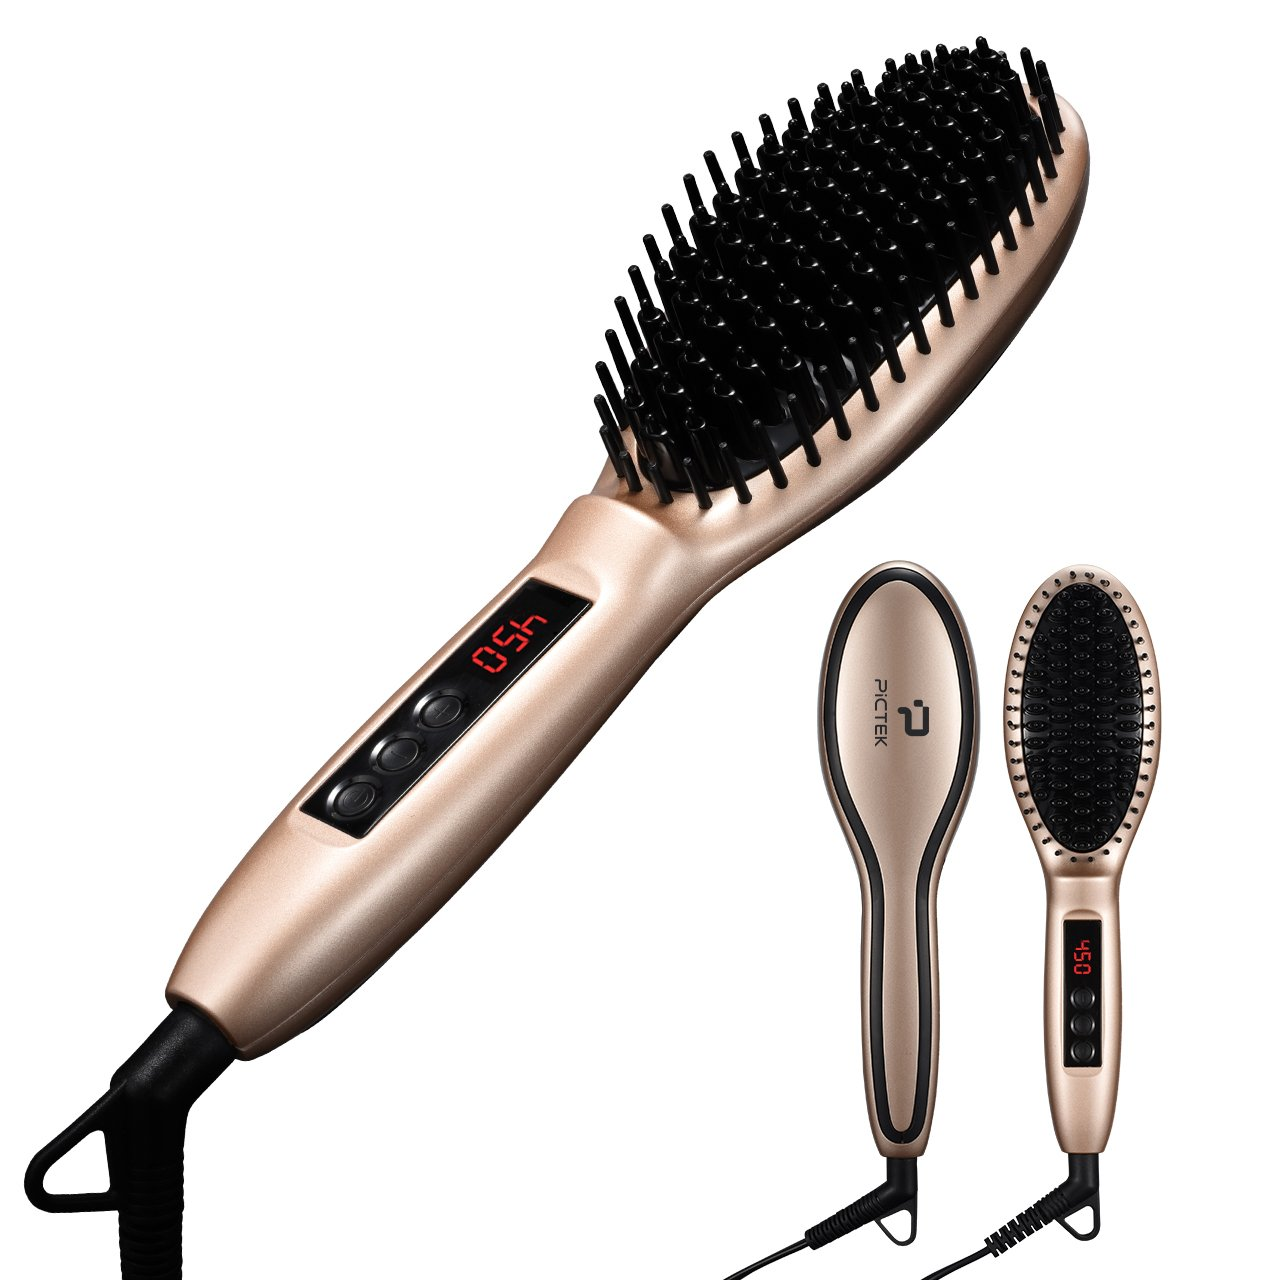 PICTEK Hair Straightener Brush with Ionic Technology, 30 Seconds Fast Heating, Anti-Scald, Auto-Off and Auto-Lock Temperature Design, for All Kinds of Hair